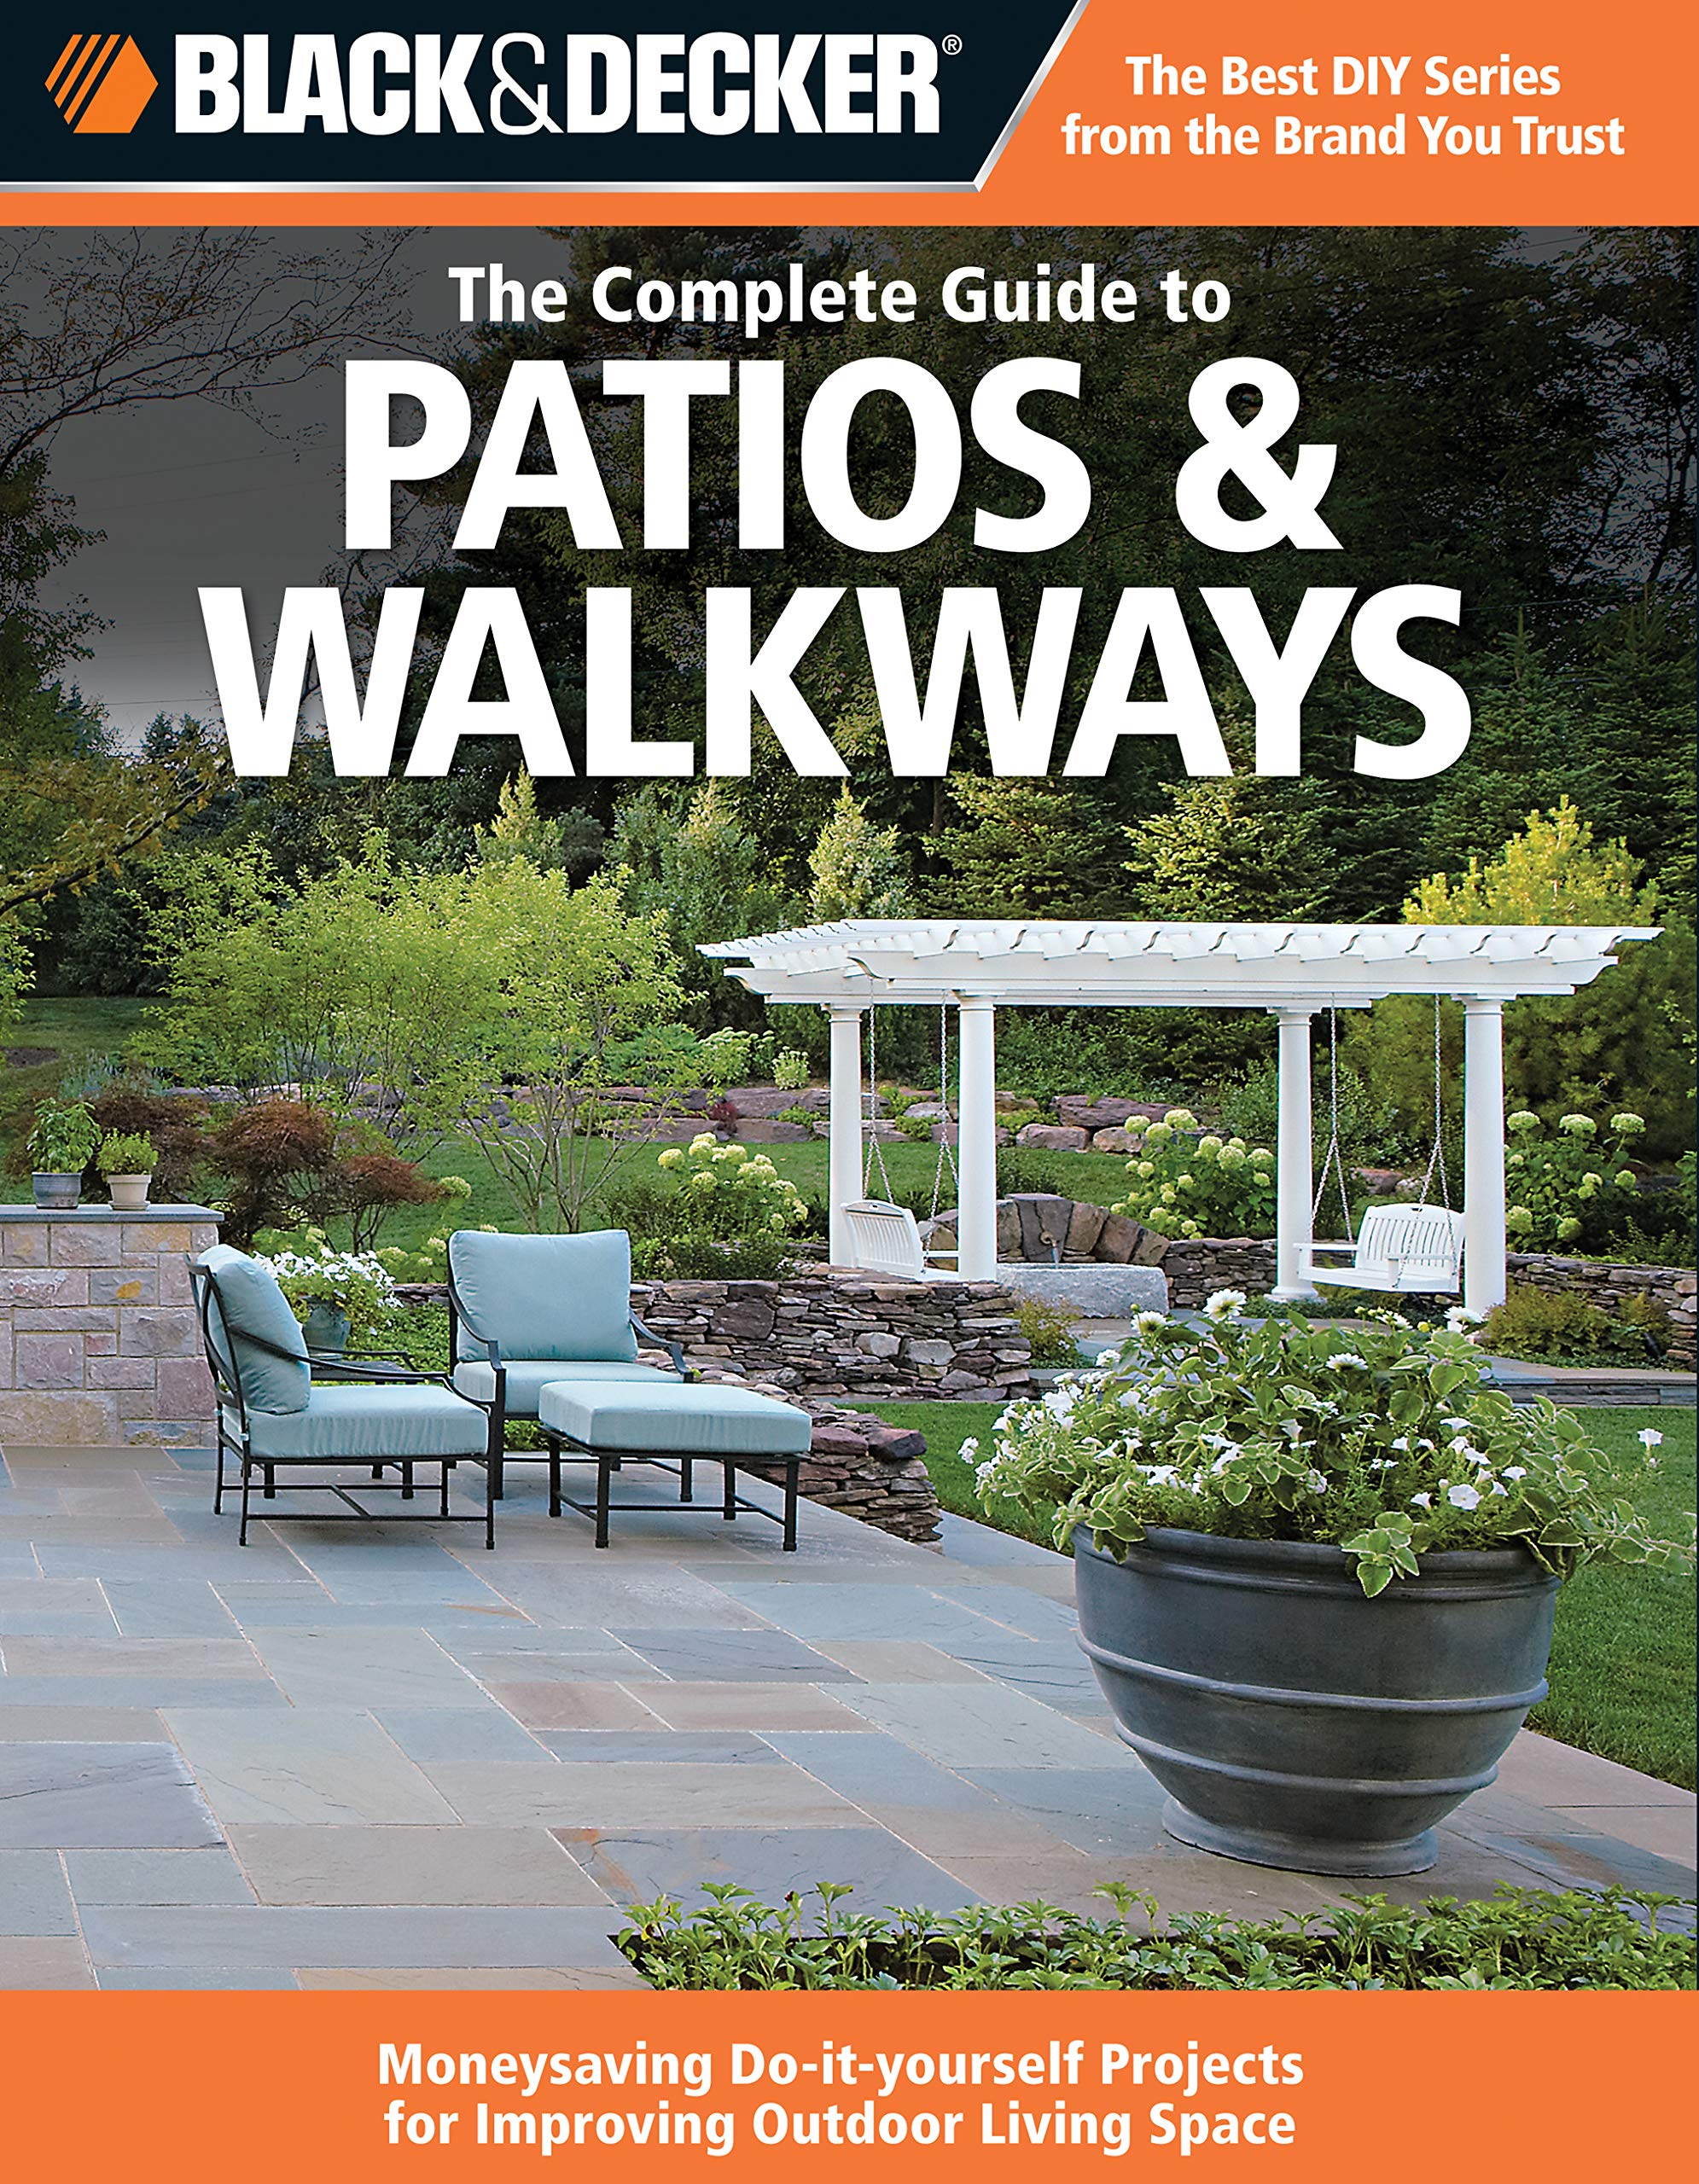 Black decker the complete guide to patios walkways money saving black decker the complete guide to patios walkways money saving do it yourself projects for improving outdoor living space black decker complete solutioingenieria